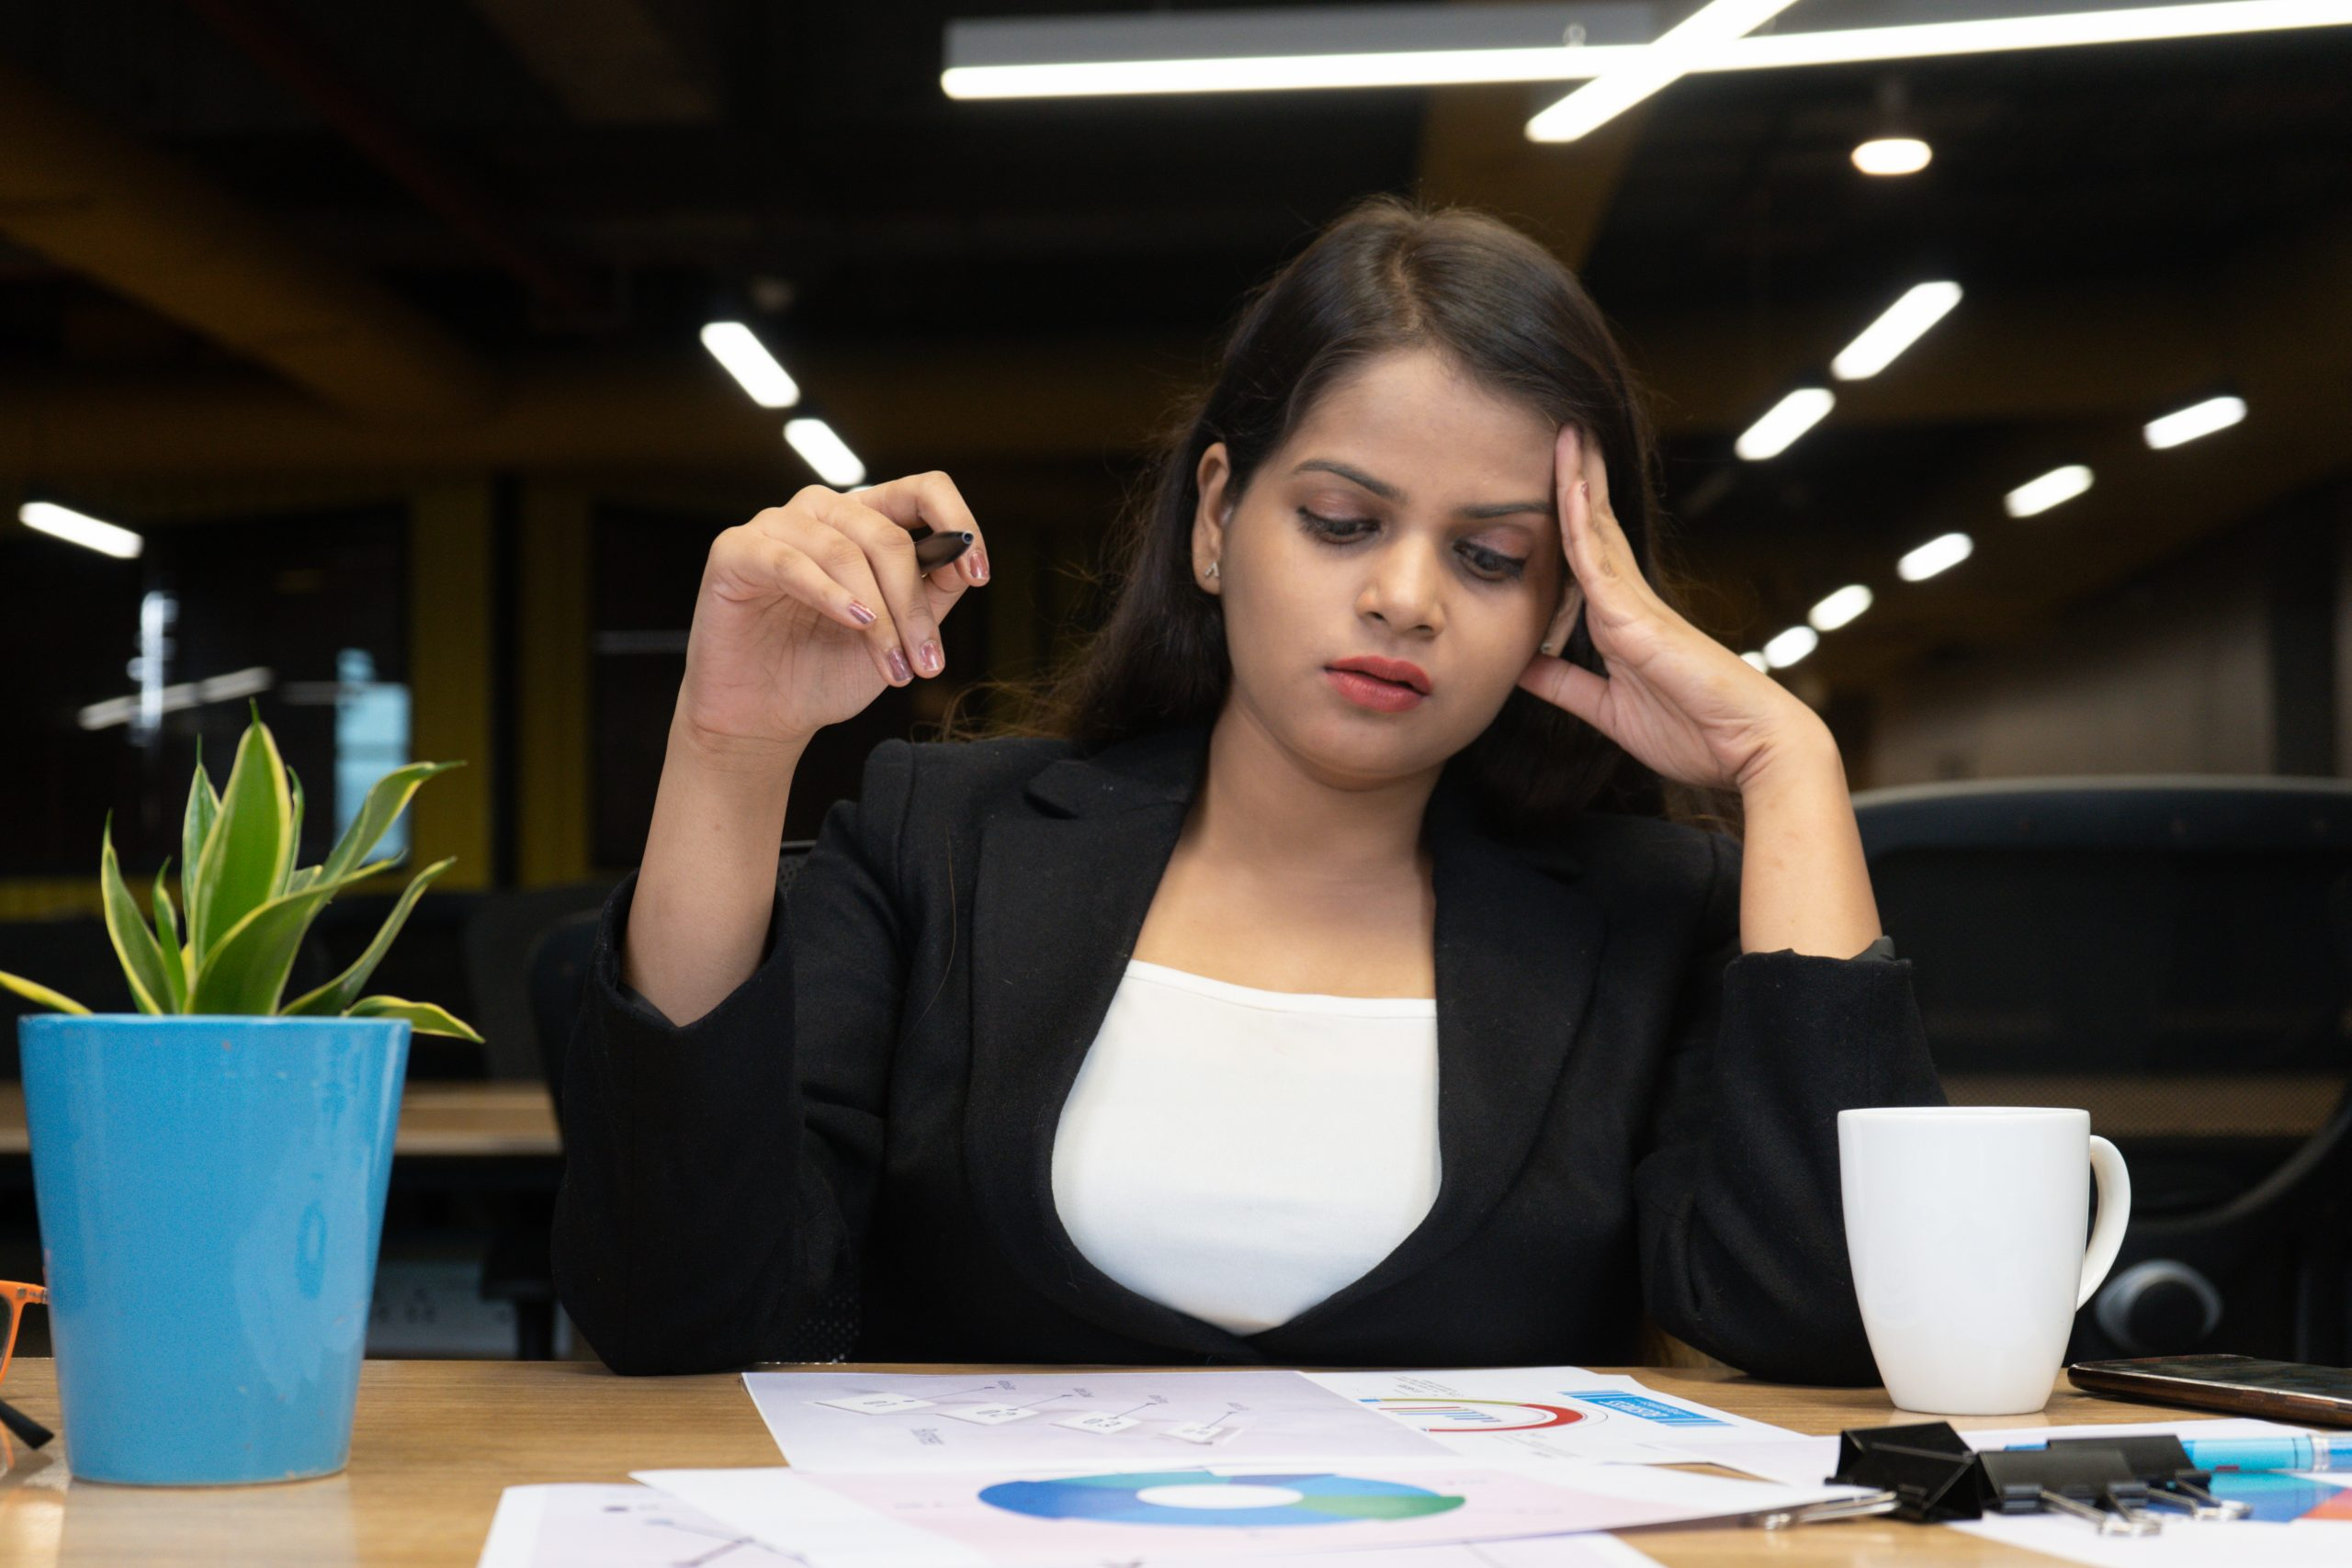 girl working in office